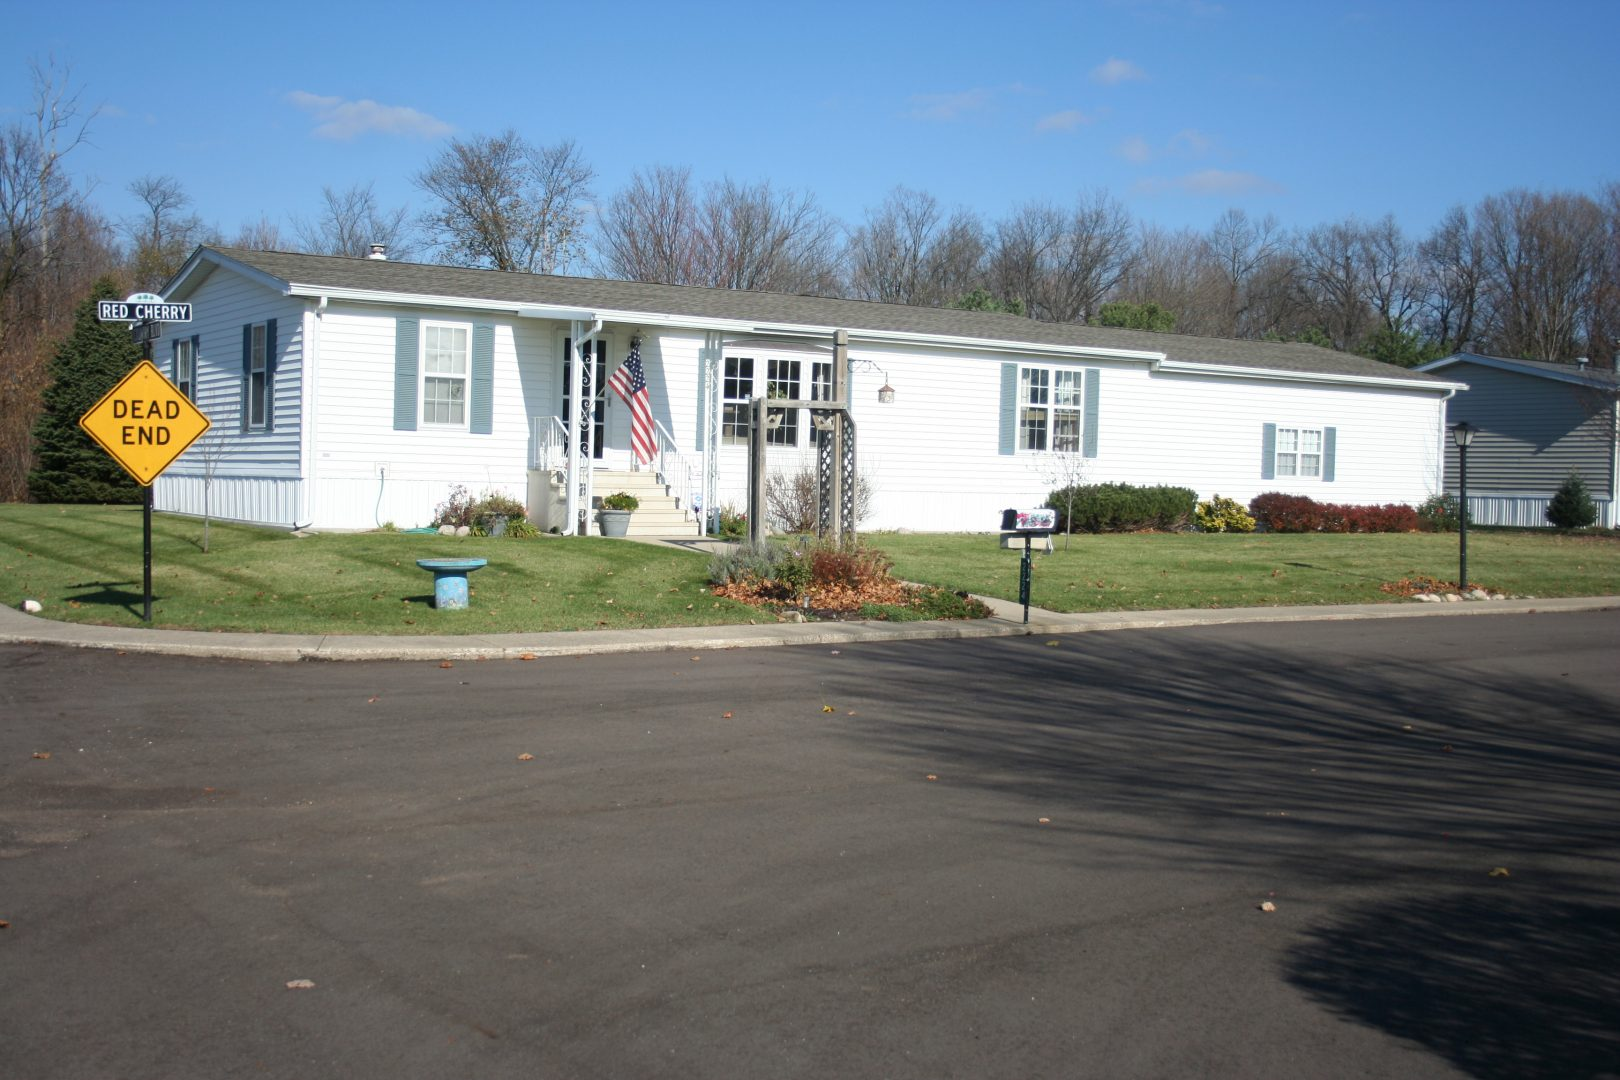 Mobile home for sale in Kalamazoo MI